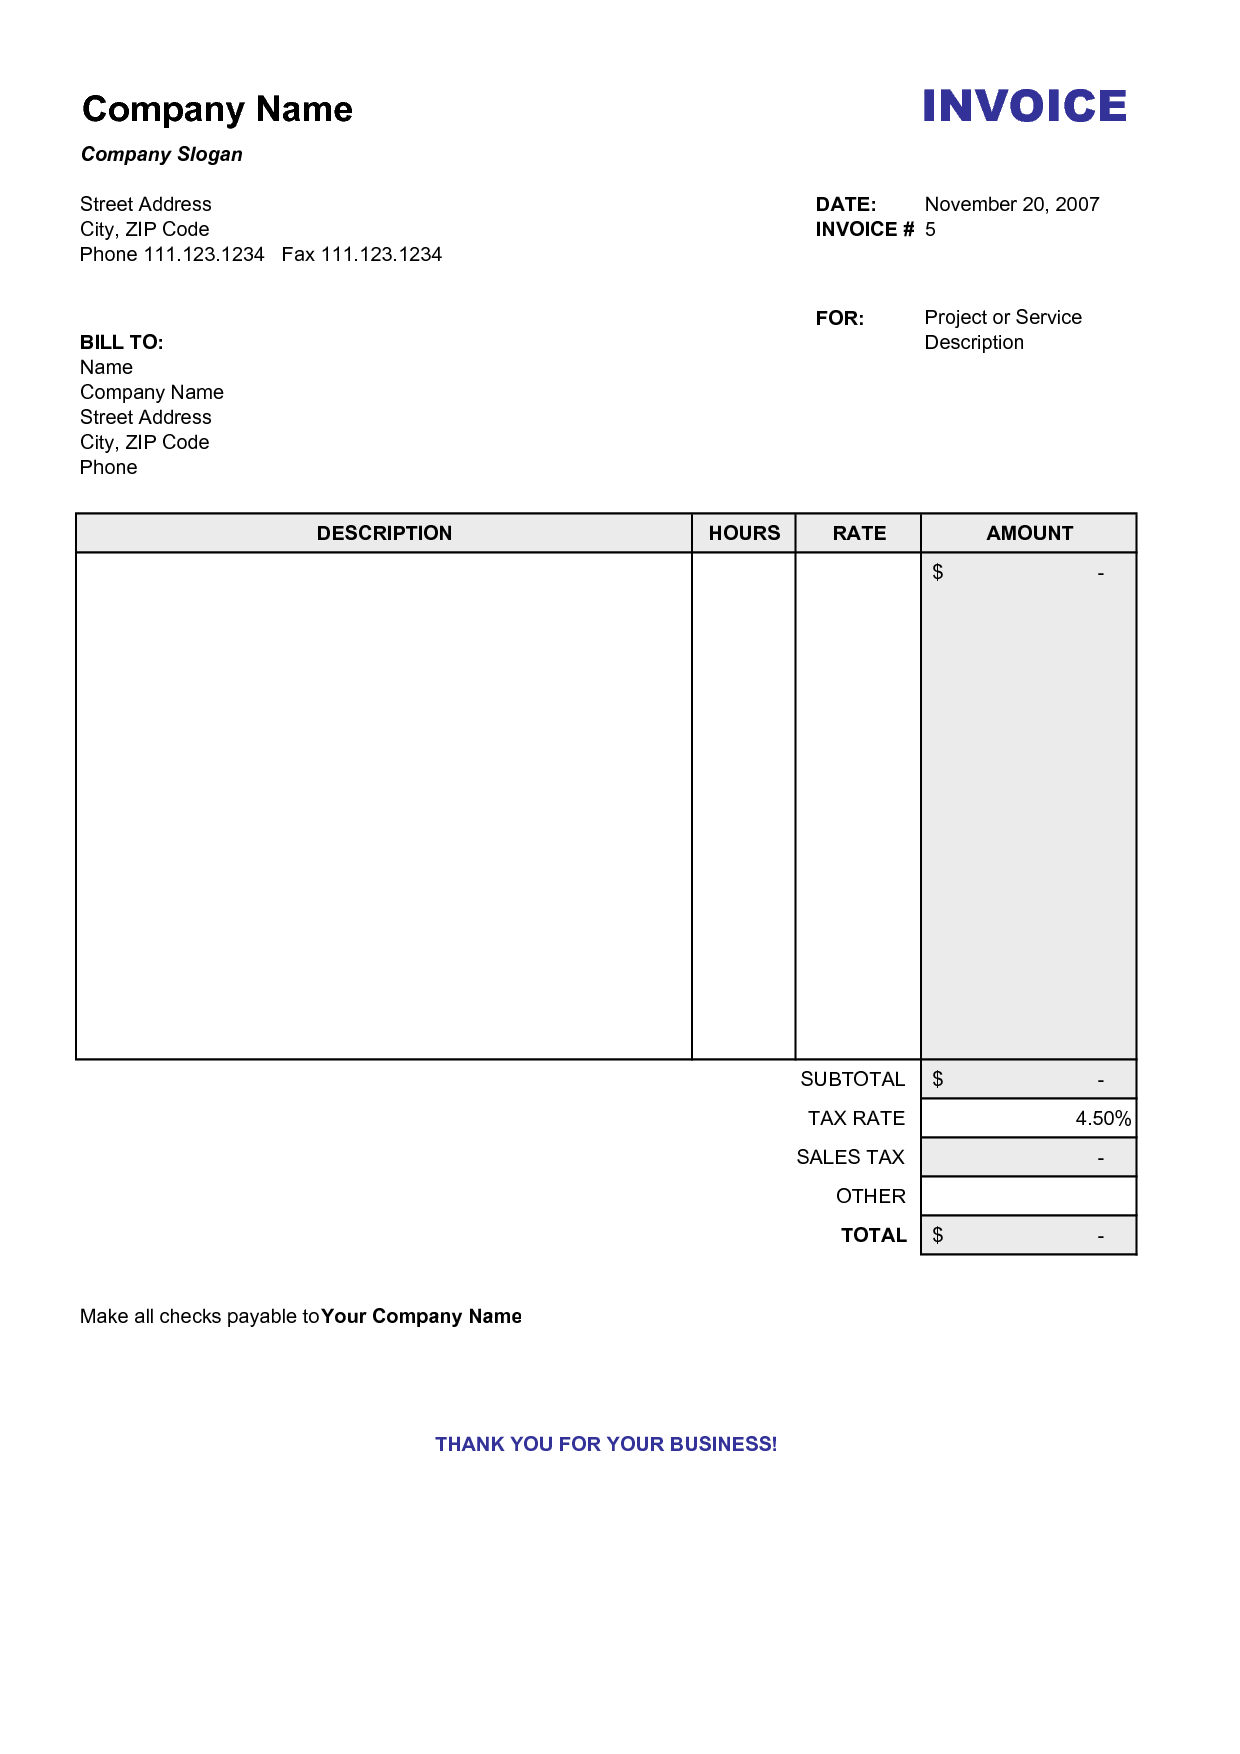 Cleaning Invoice Sample and Blank Billing Invoice Scope Of Work Template organization